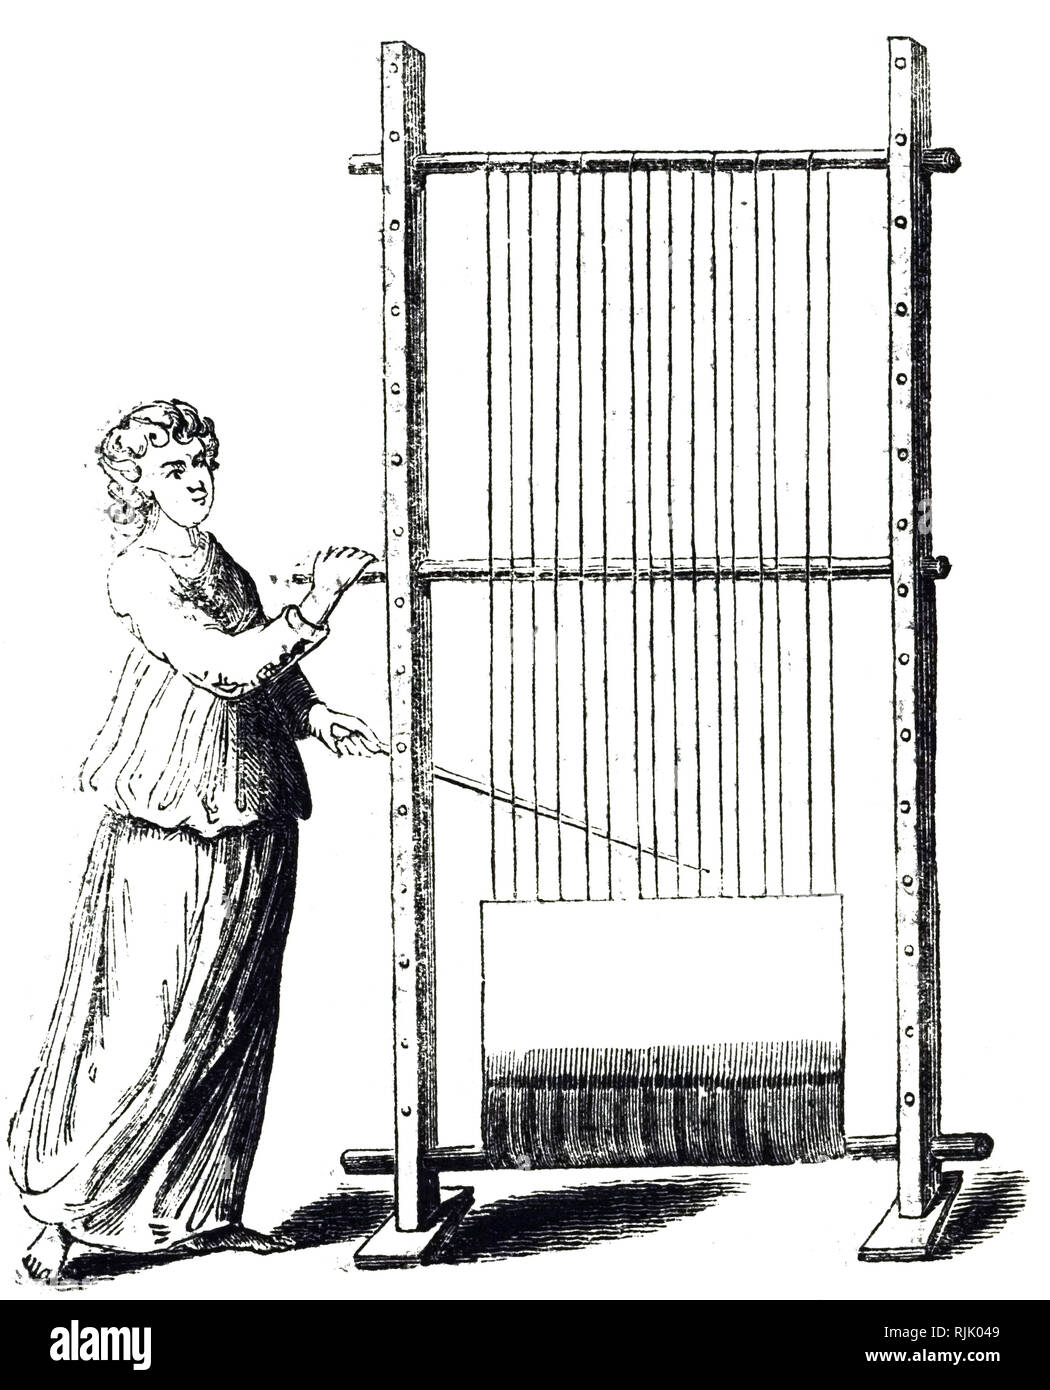 An engraving depicting a warping frame used to create a warp of the correct size and tension. The sturdy frame has pegs set firmly at regular intervals. Dated 19th century - Stock Image